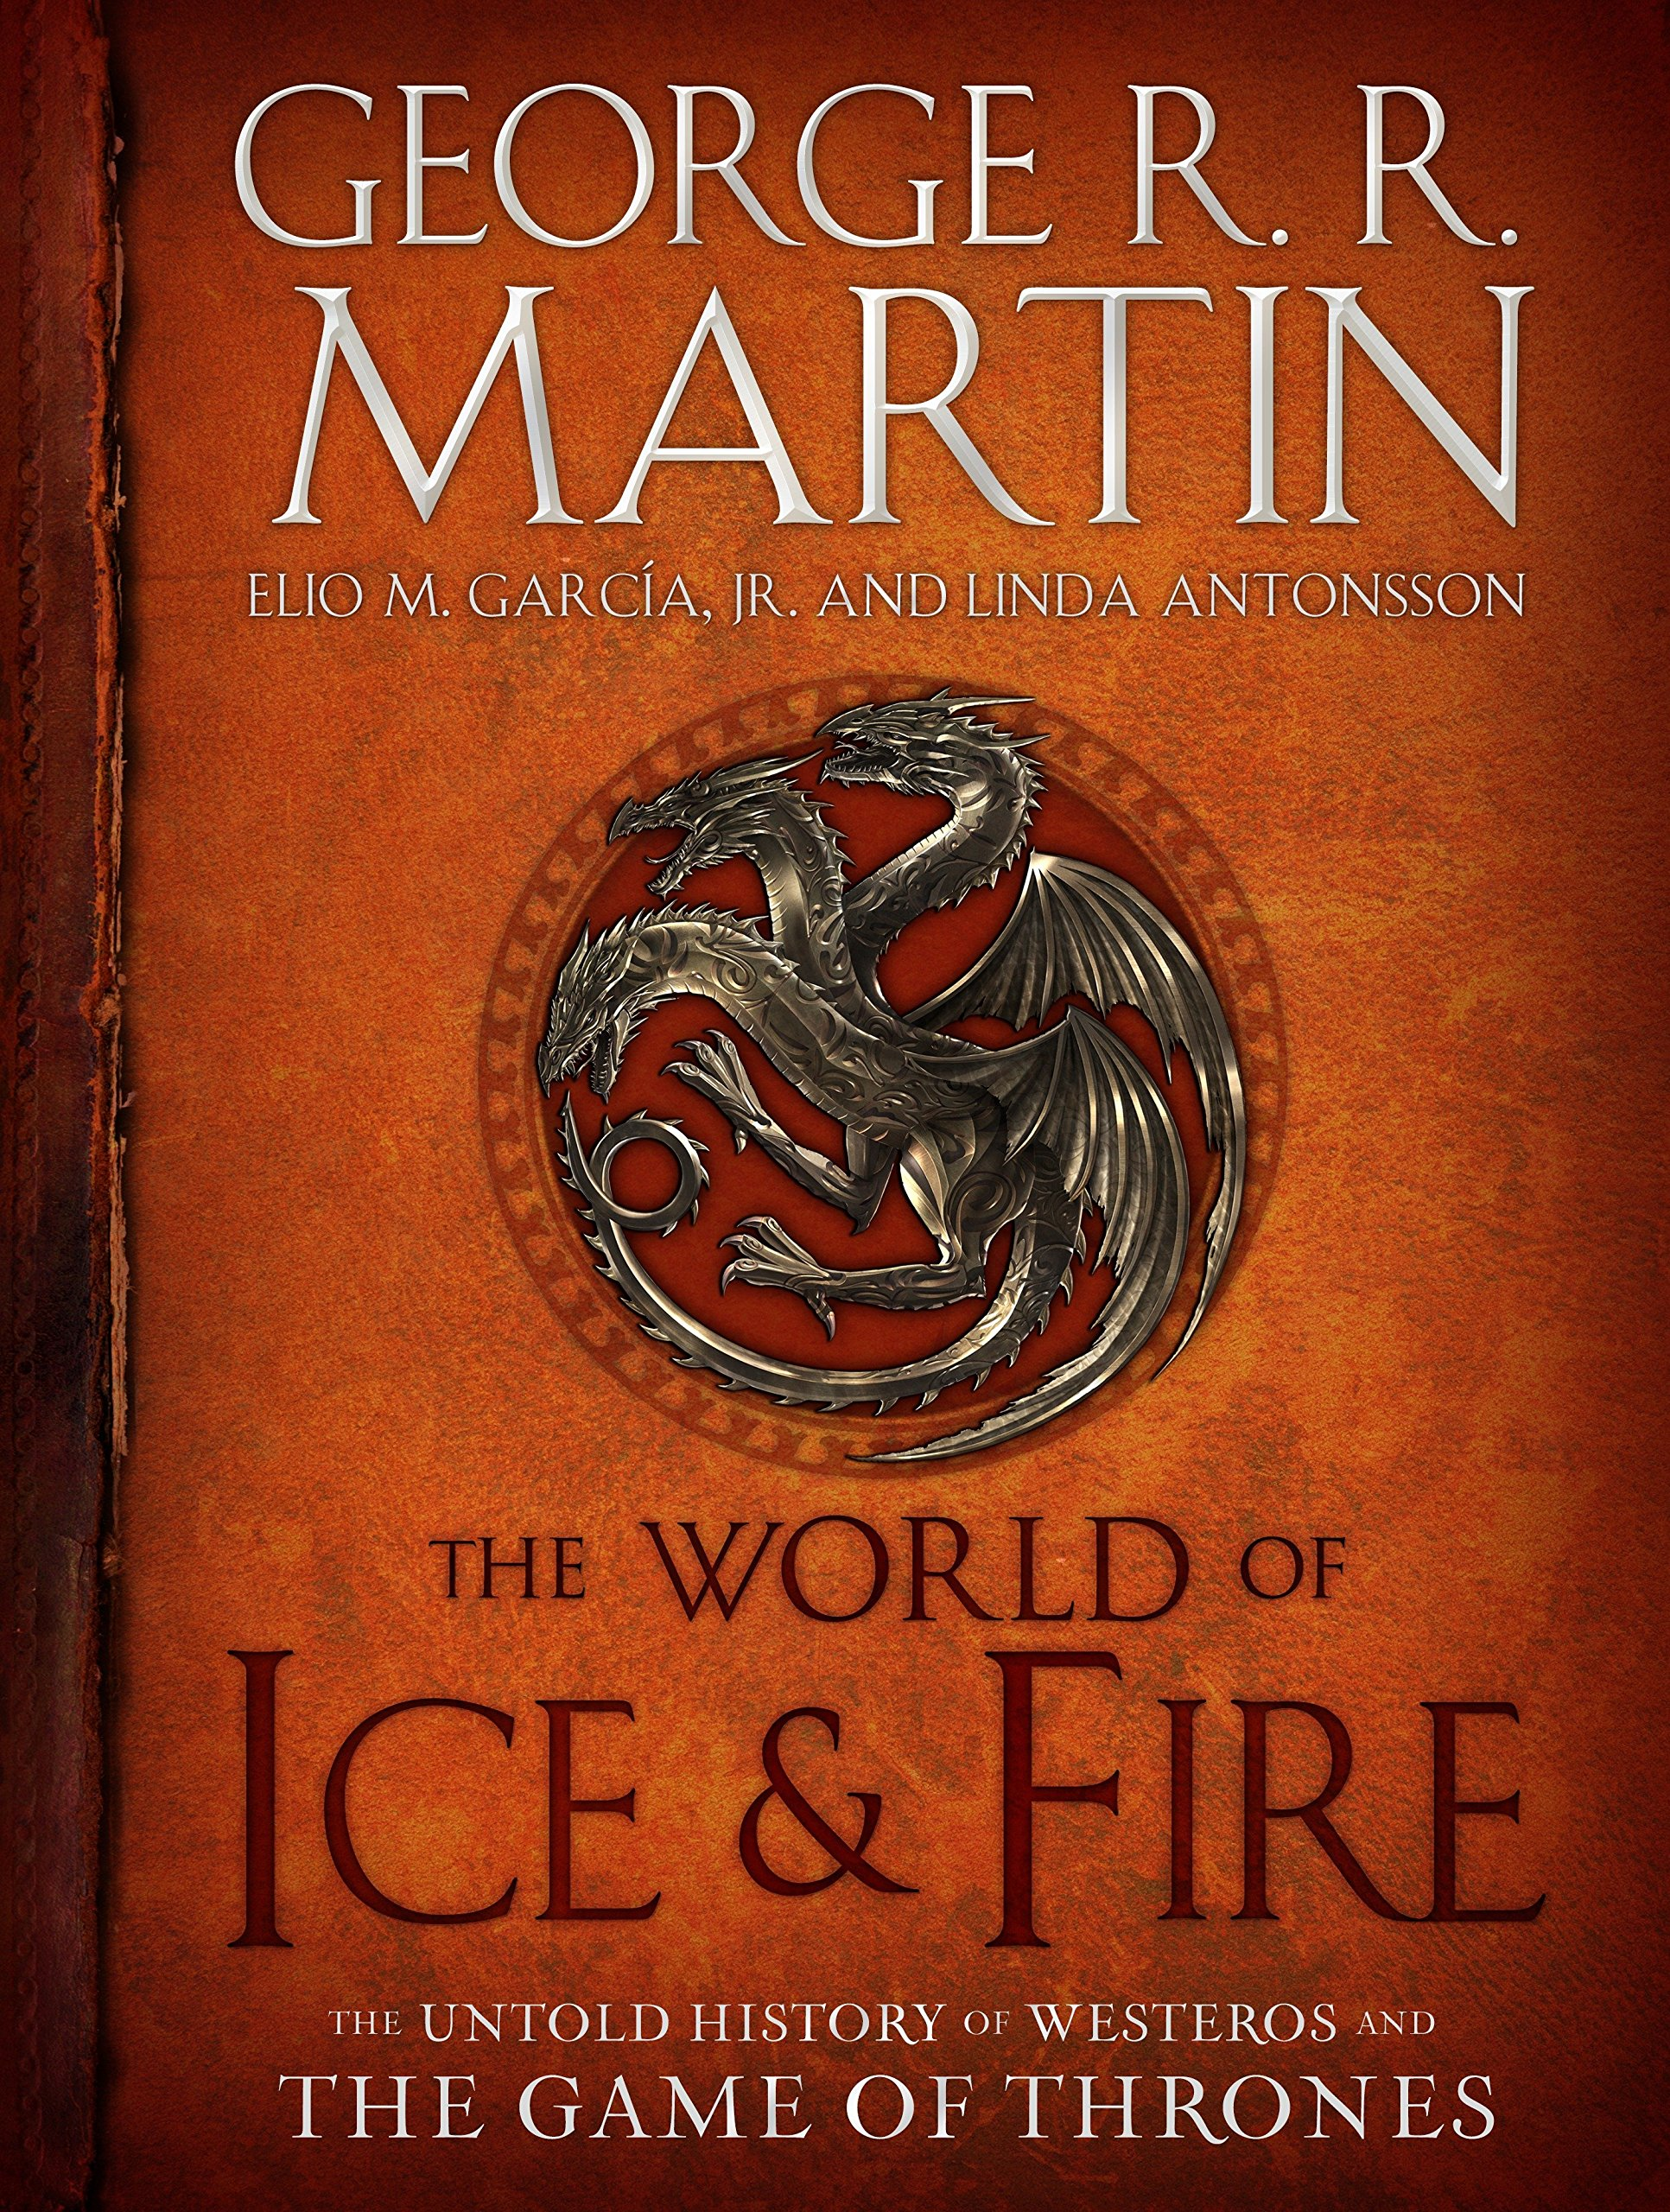 The World of Ice & Fire: The Untold History of Westeros and the Game of Thrones ebook